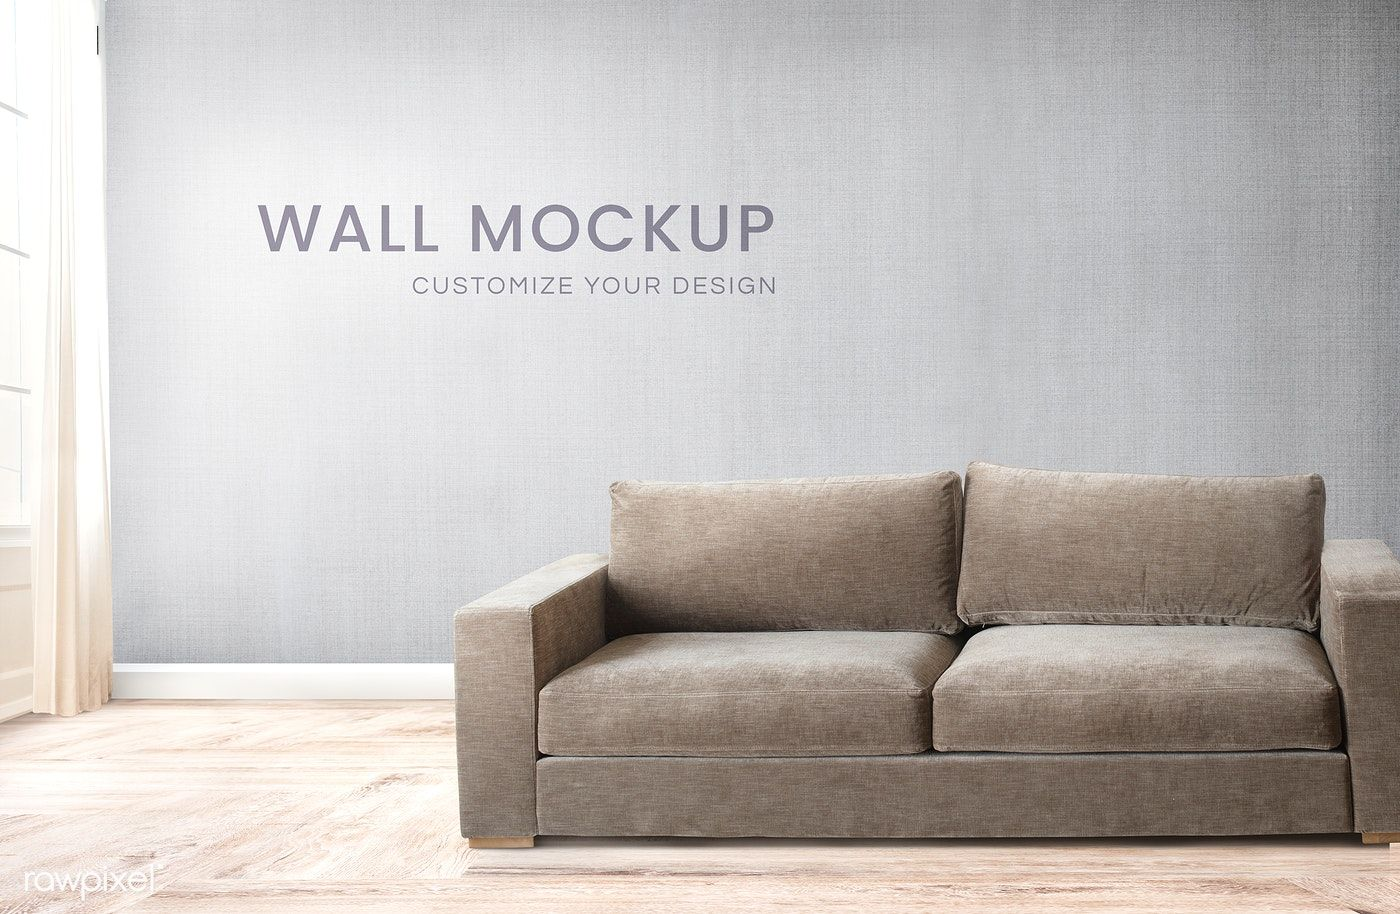 Download Premium Psd Of Brown Couch Against A Gray Wall Mockup 580429 Grey Walls Grey Room Brown Couch